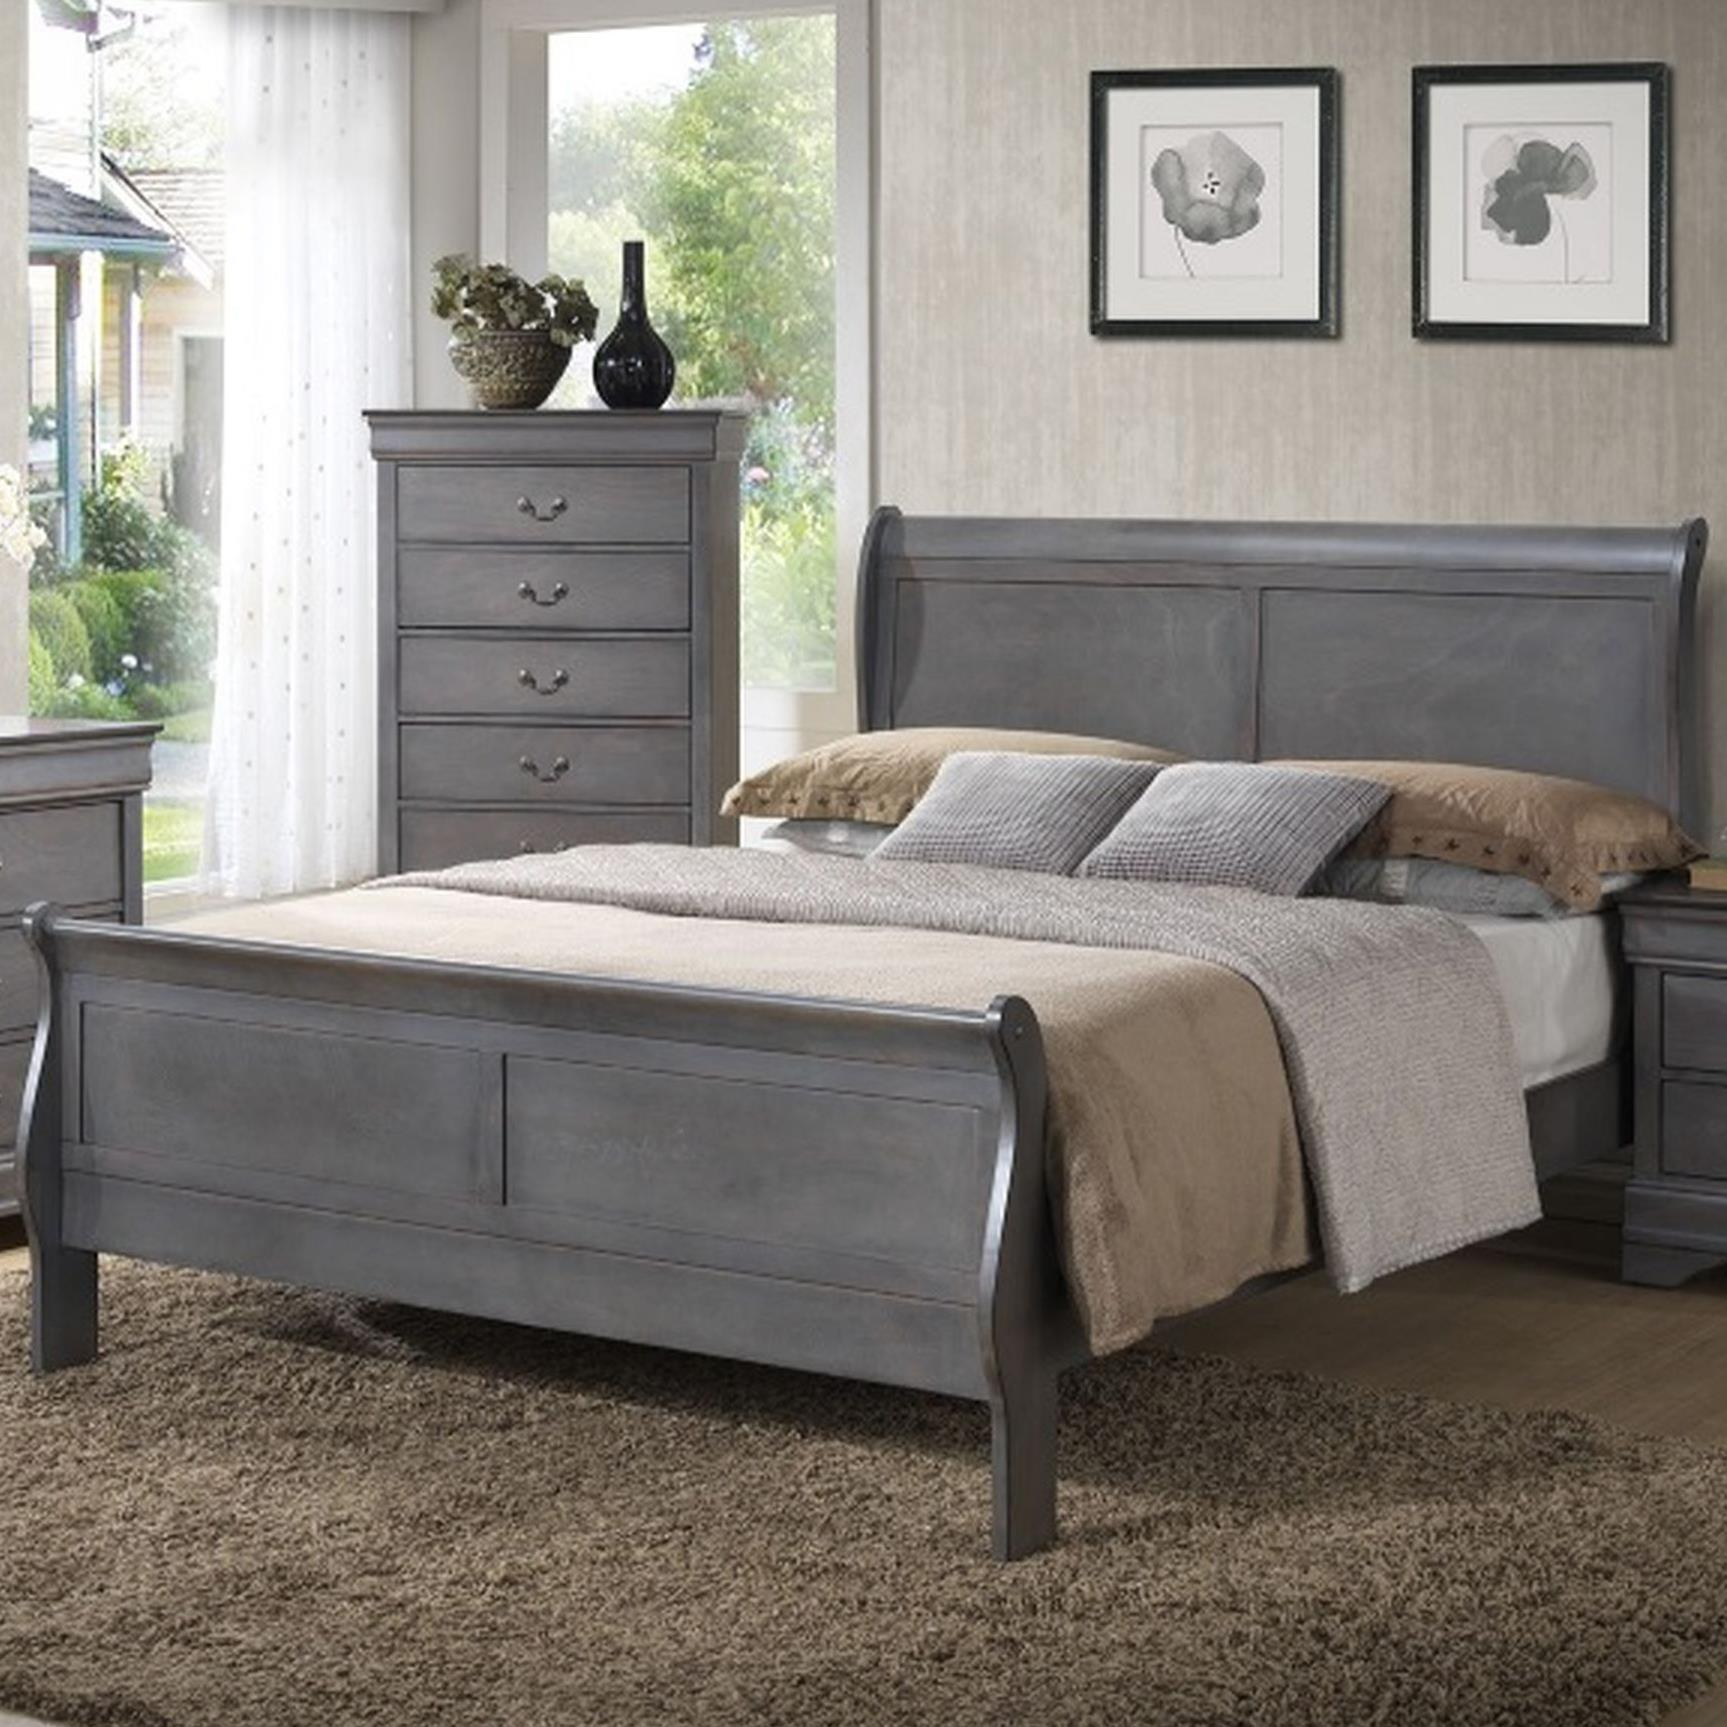 Queen Bed, Dresser/Mirror, Chest, Nightstand